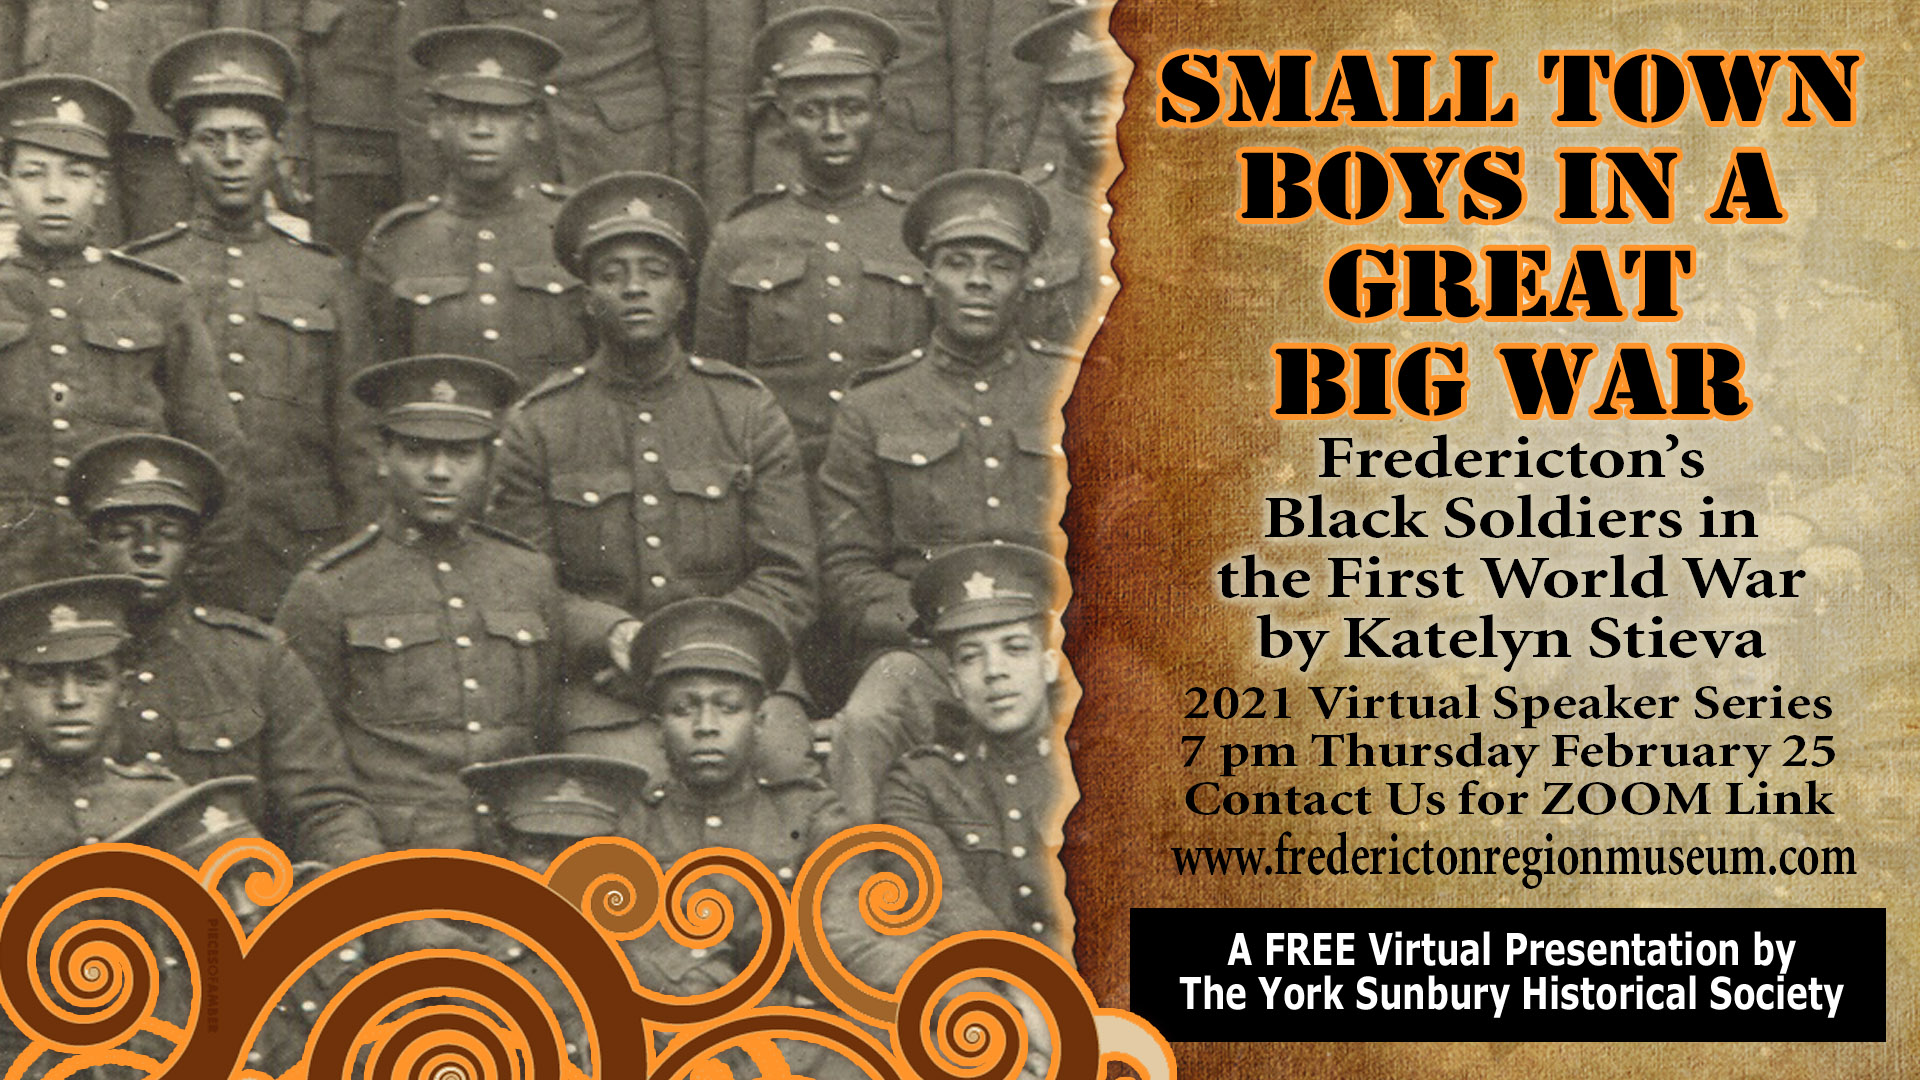 Fredericton's Black Soldiers in the First World War